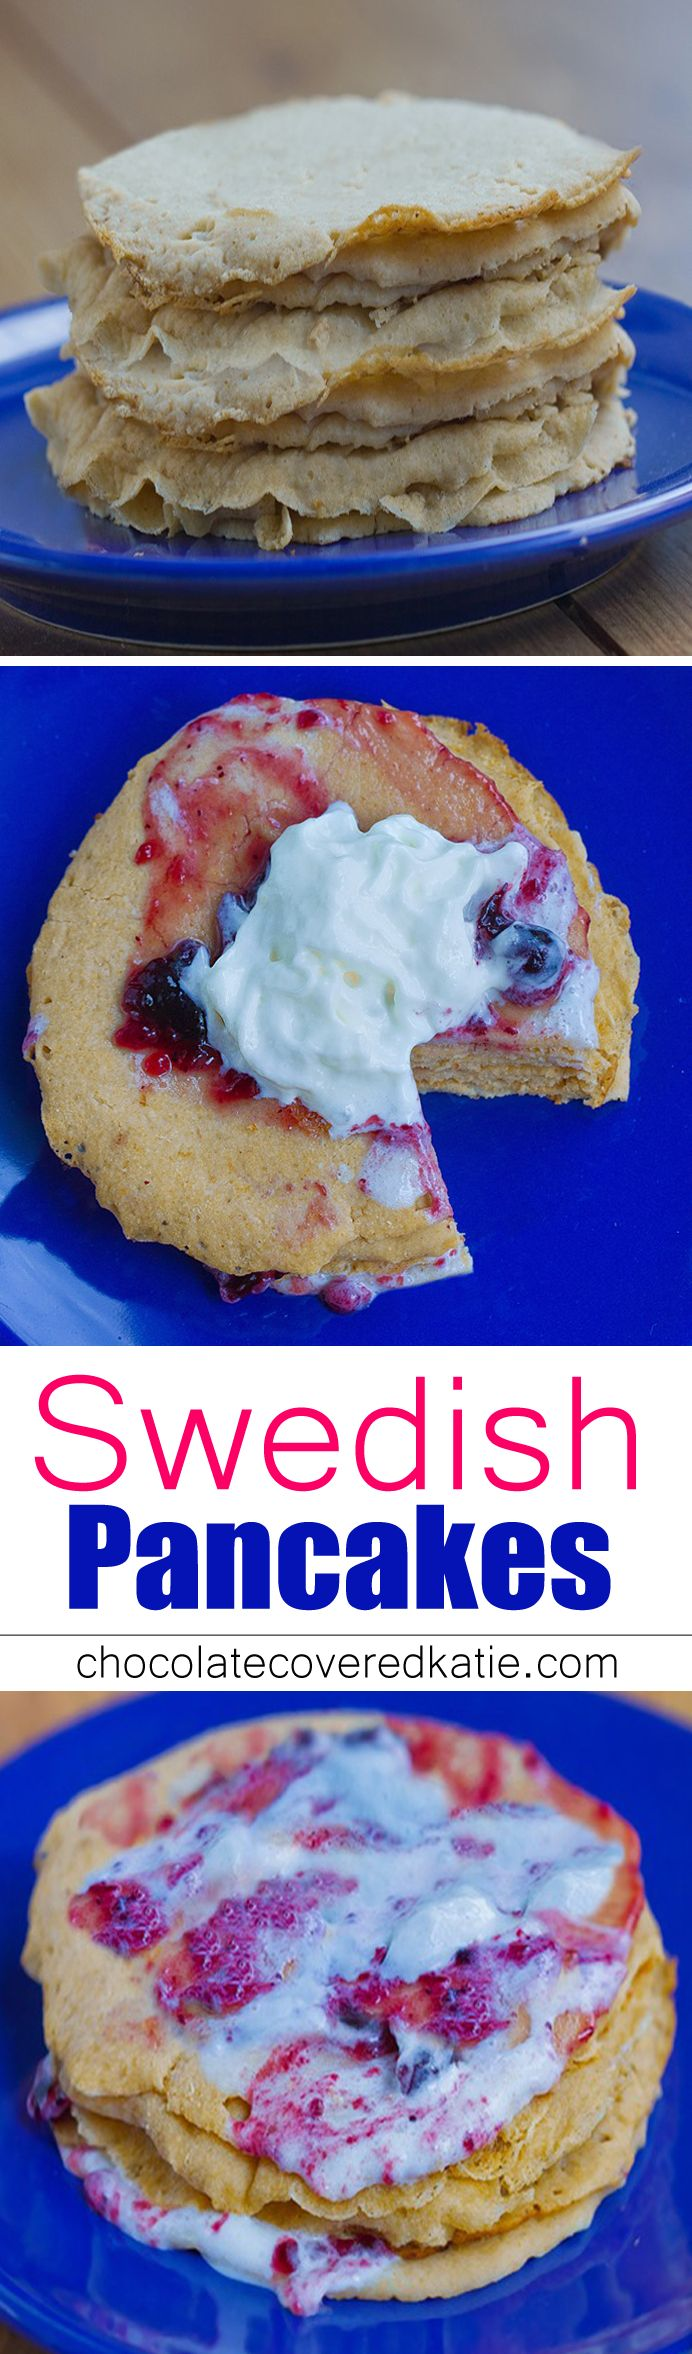 Swedish Pancakes are light and deliciously eggy… unlike anything you've ever tried. You may never go back to traditional pancakes. How to make them: http://chocolatecoveredkatie.com/2015/09/24/swedish-pancakes-recipe-healthy-vegan/